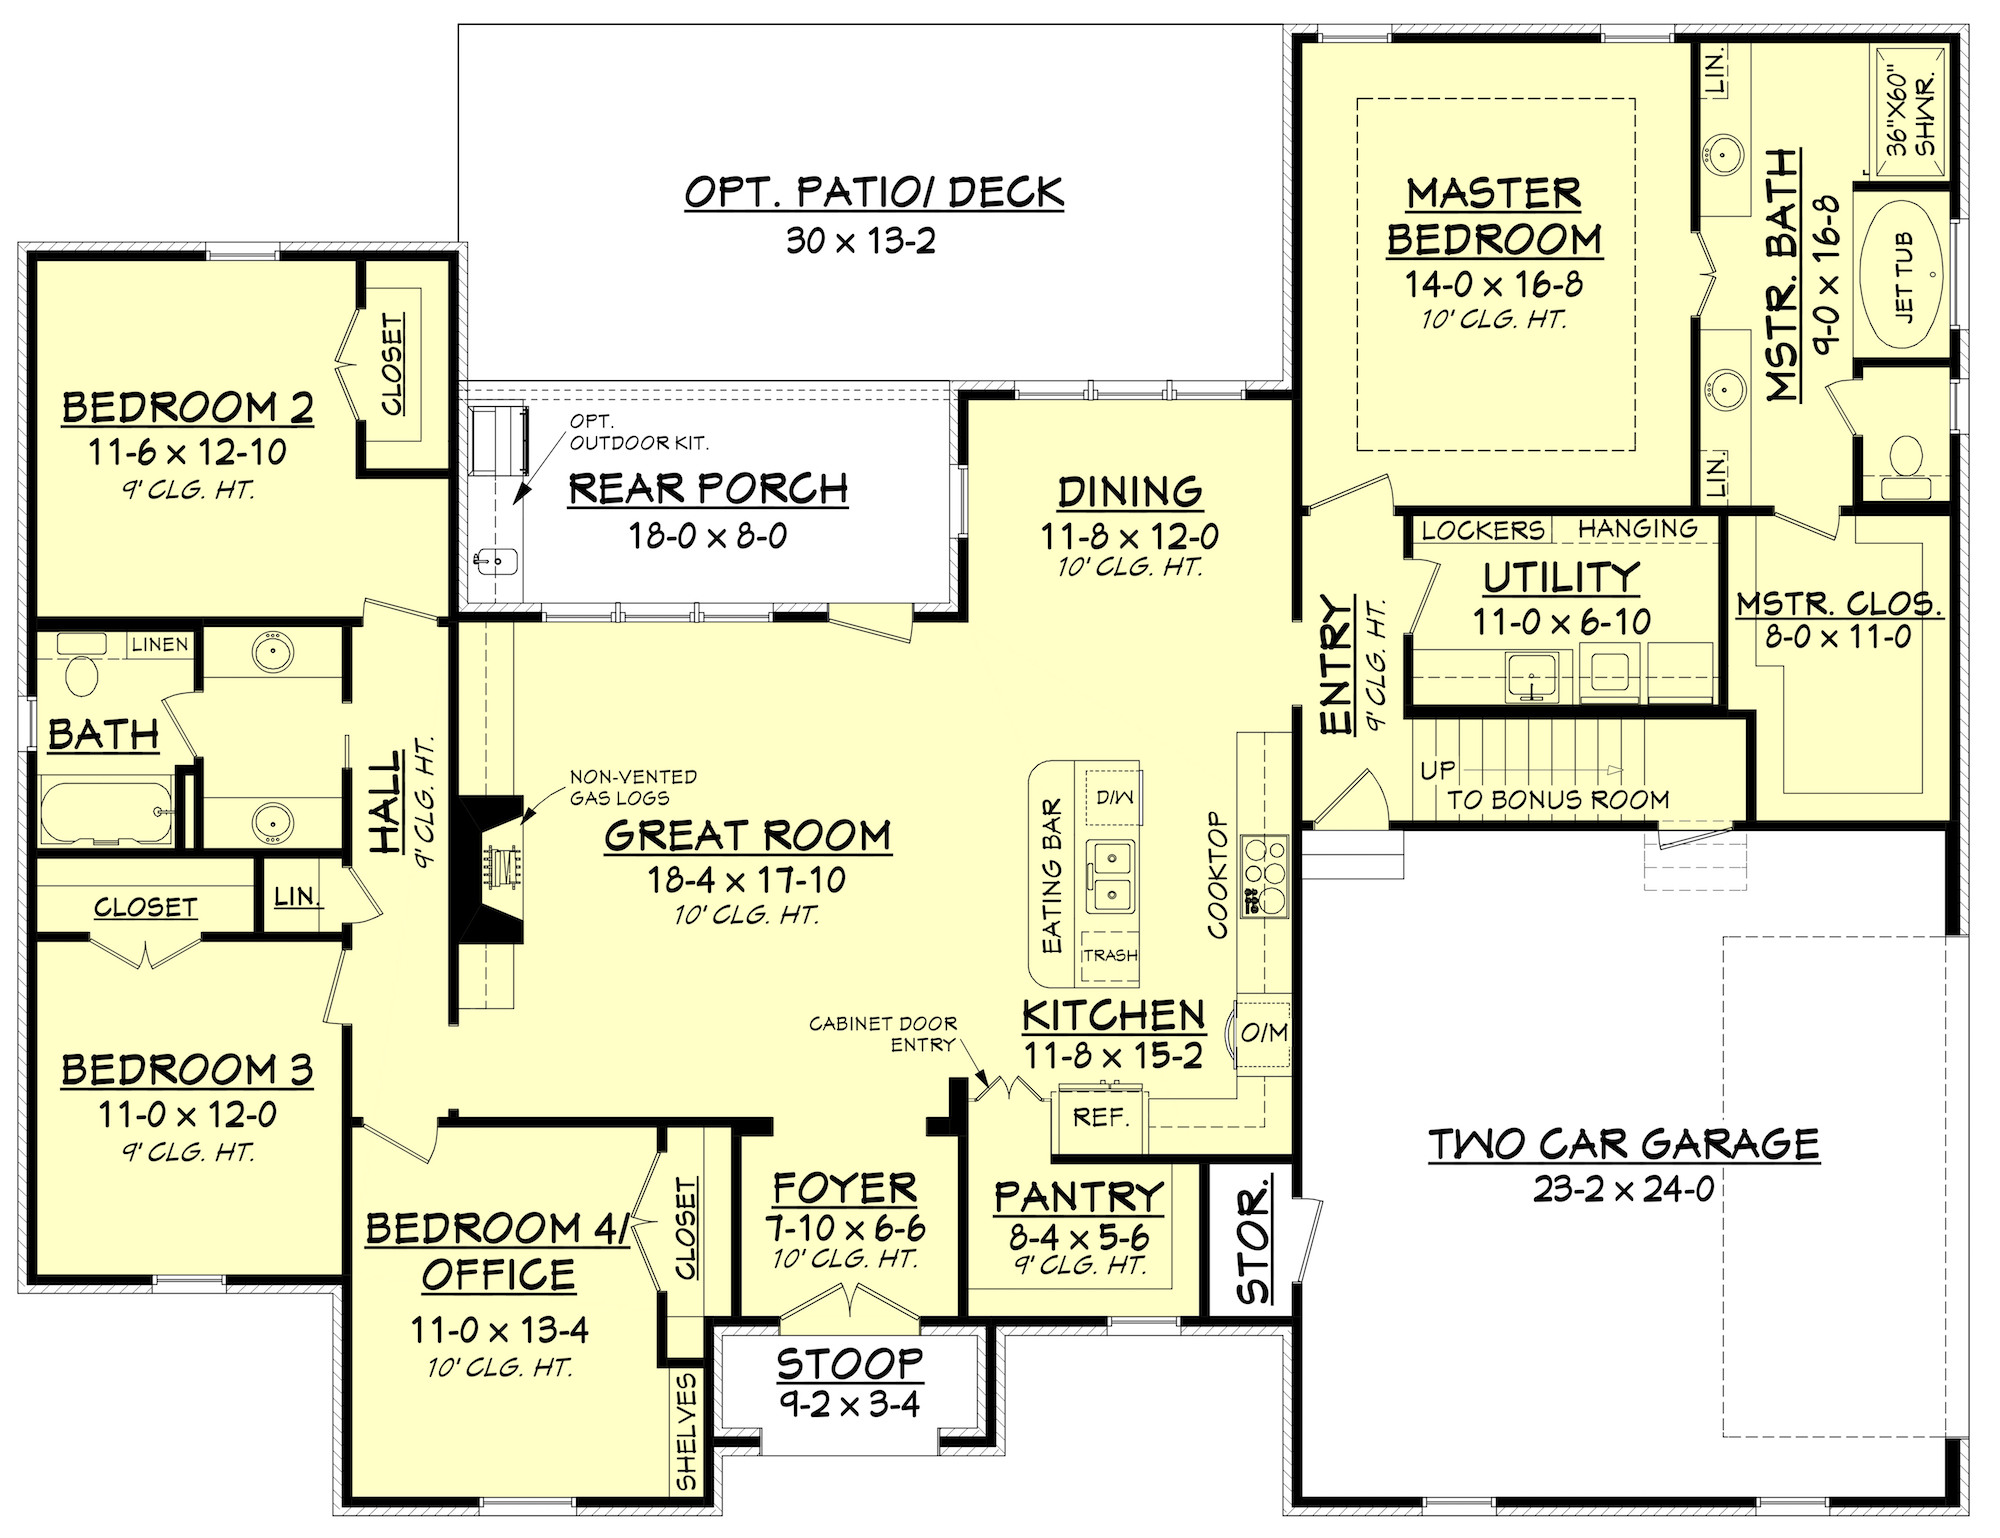 Acadian house plan 142 1154 4 bedrm 2210 sq ft home plan for Home plan com